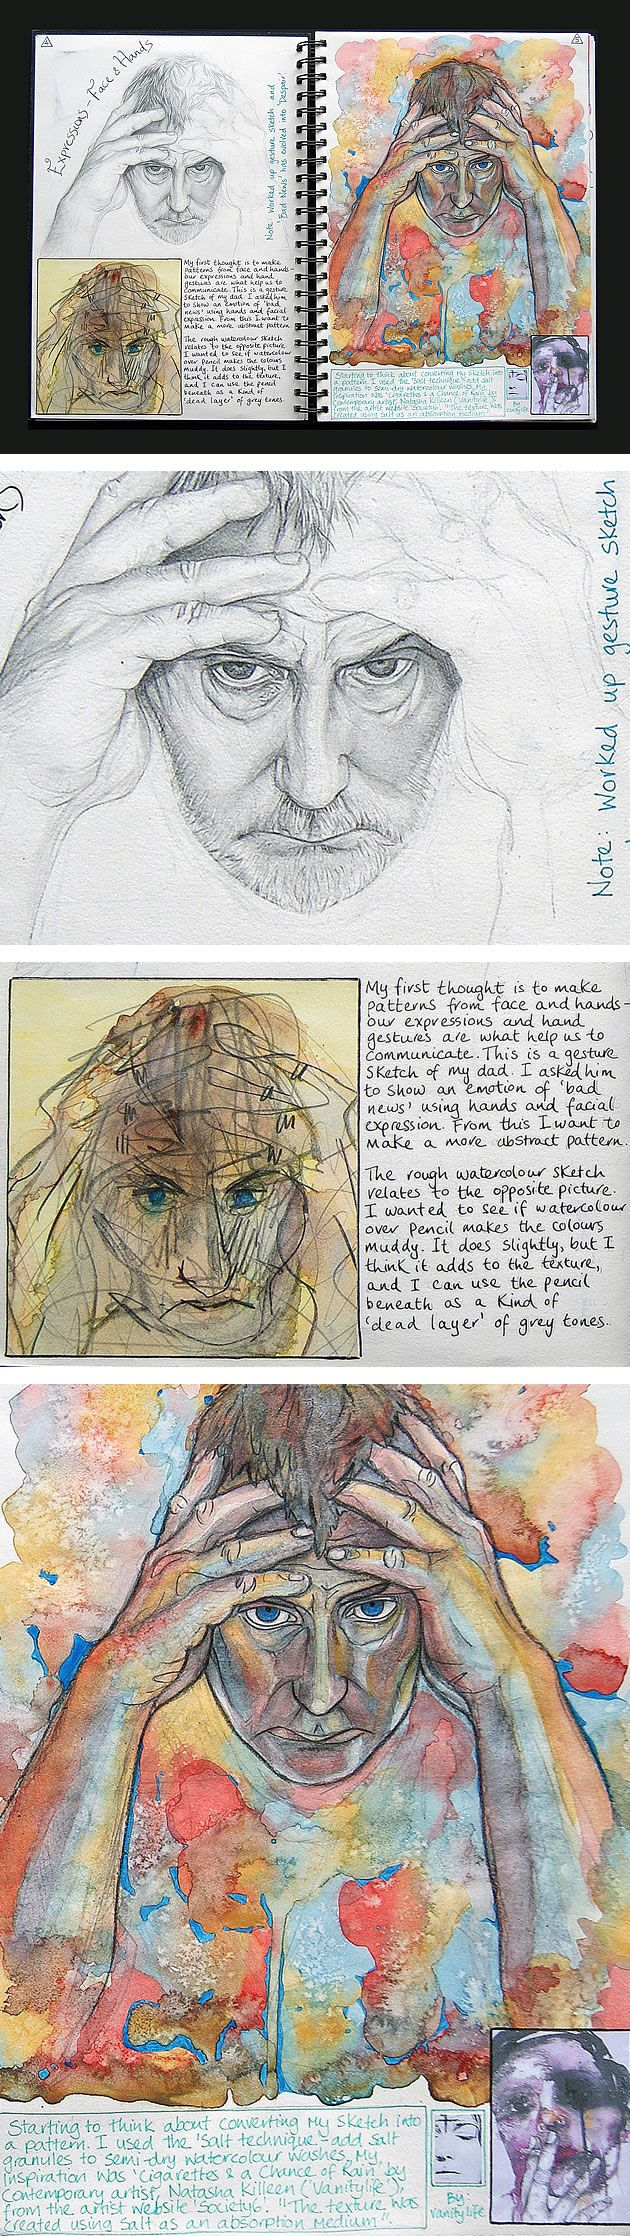 identity sketchbook page